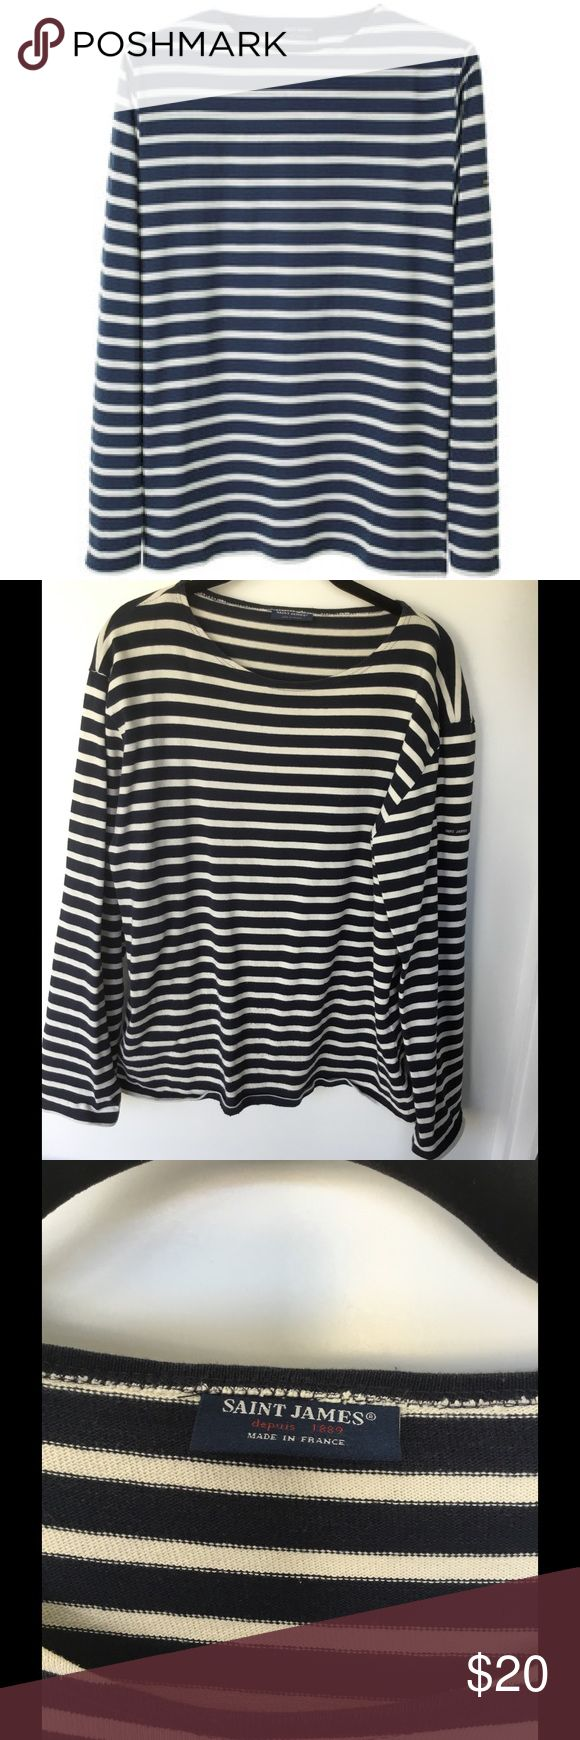 J. Crew X St. James Nautical Striped Sweatshirt J. Crew and Saint James combined to create this nautical sweatshirt. Crafted in substantial cotton by Saint James, reknowned for their knit shirts since 1850. Slight slouchy fit. Boat neck and long sleeves. Unisex-Men's large, Women's medium or large. Wear & pilling pictured & reflected in price. Please submit reasonable offers via the 'Offer' function. NO negotiating in the comments section, trading or alternate site transactions. All items…